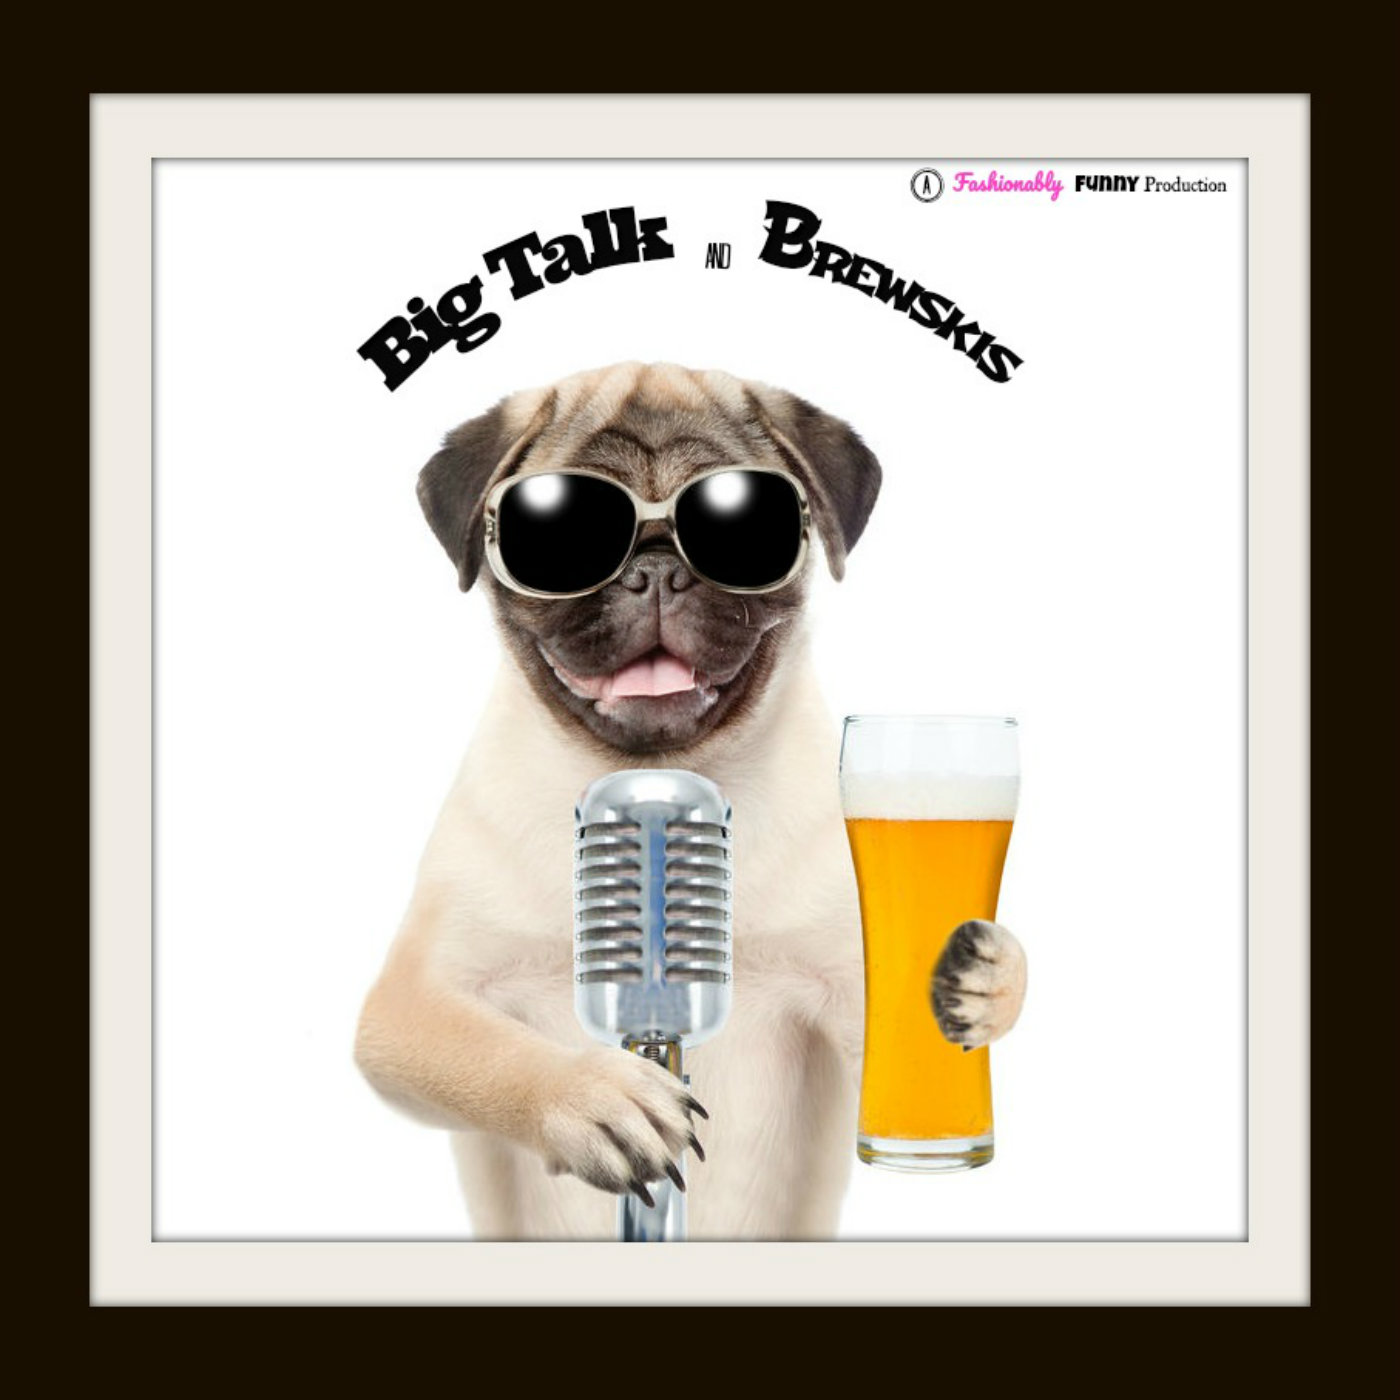 Big Talk &Brewski's - Maryssa Smith & Co-Host Rodney Daniels join some of the best & brightest Comic's NYC has to offer for Big Talk about today's hottest topics. No subject is ever off limits. Crack open a cold one and join the Big Talk.Listen, rate, & review on iTunes & Google Play.